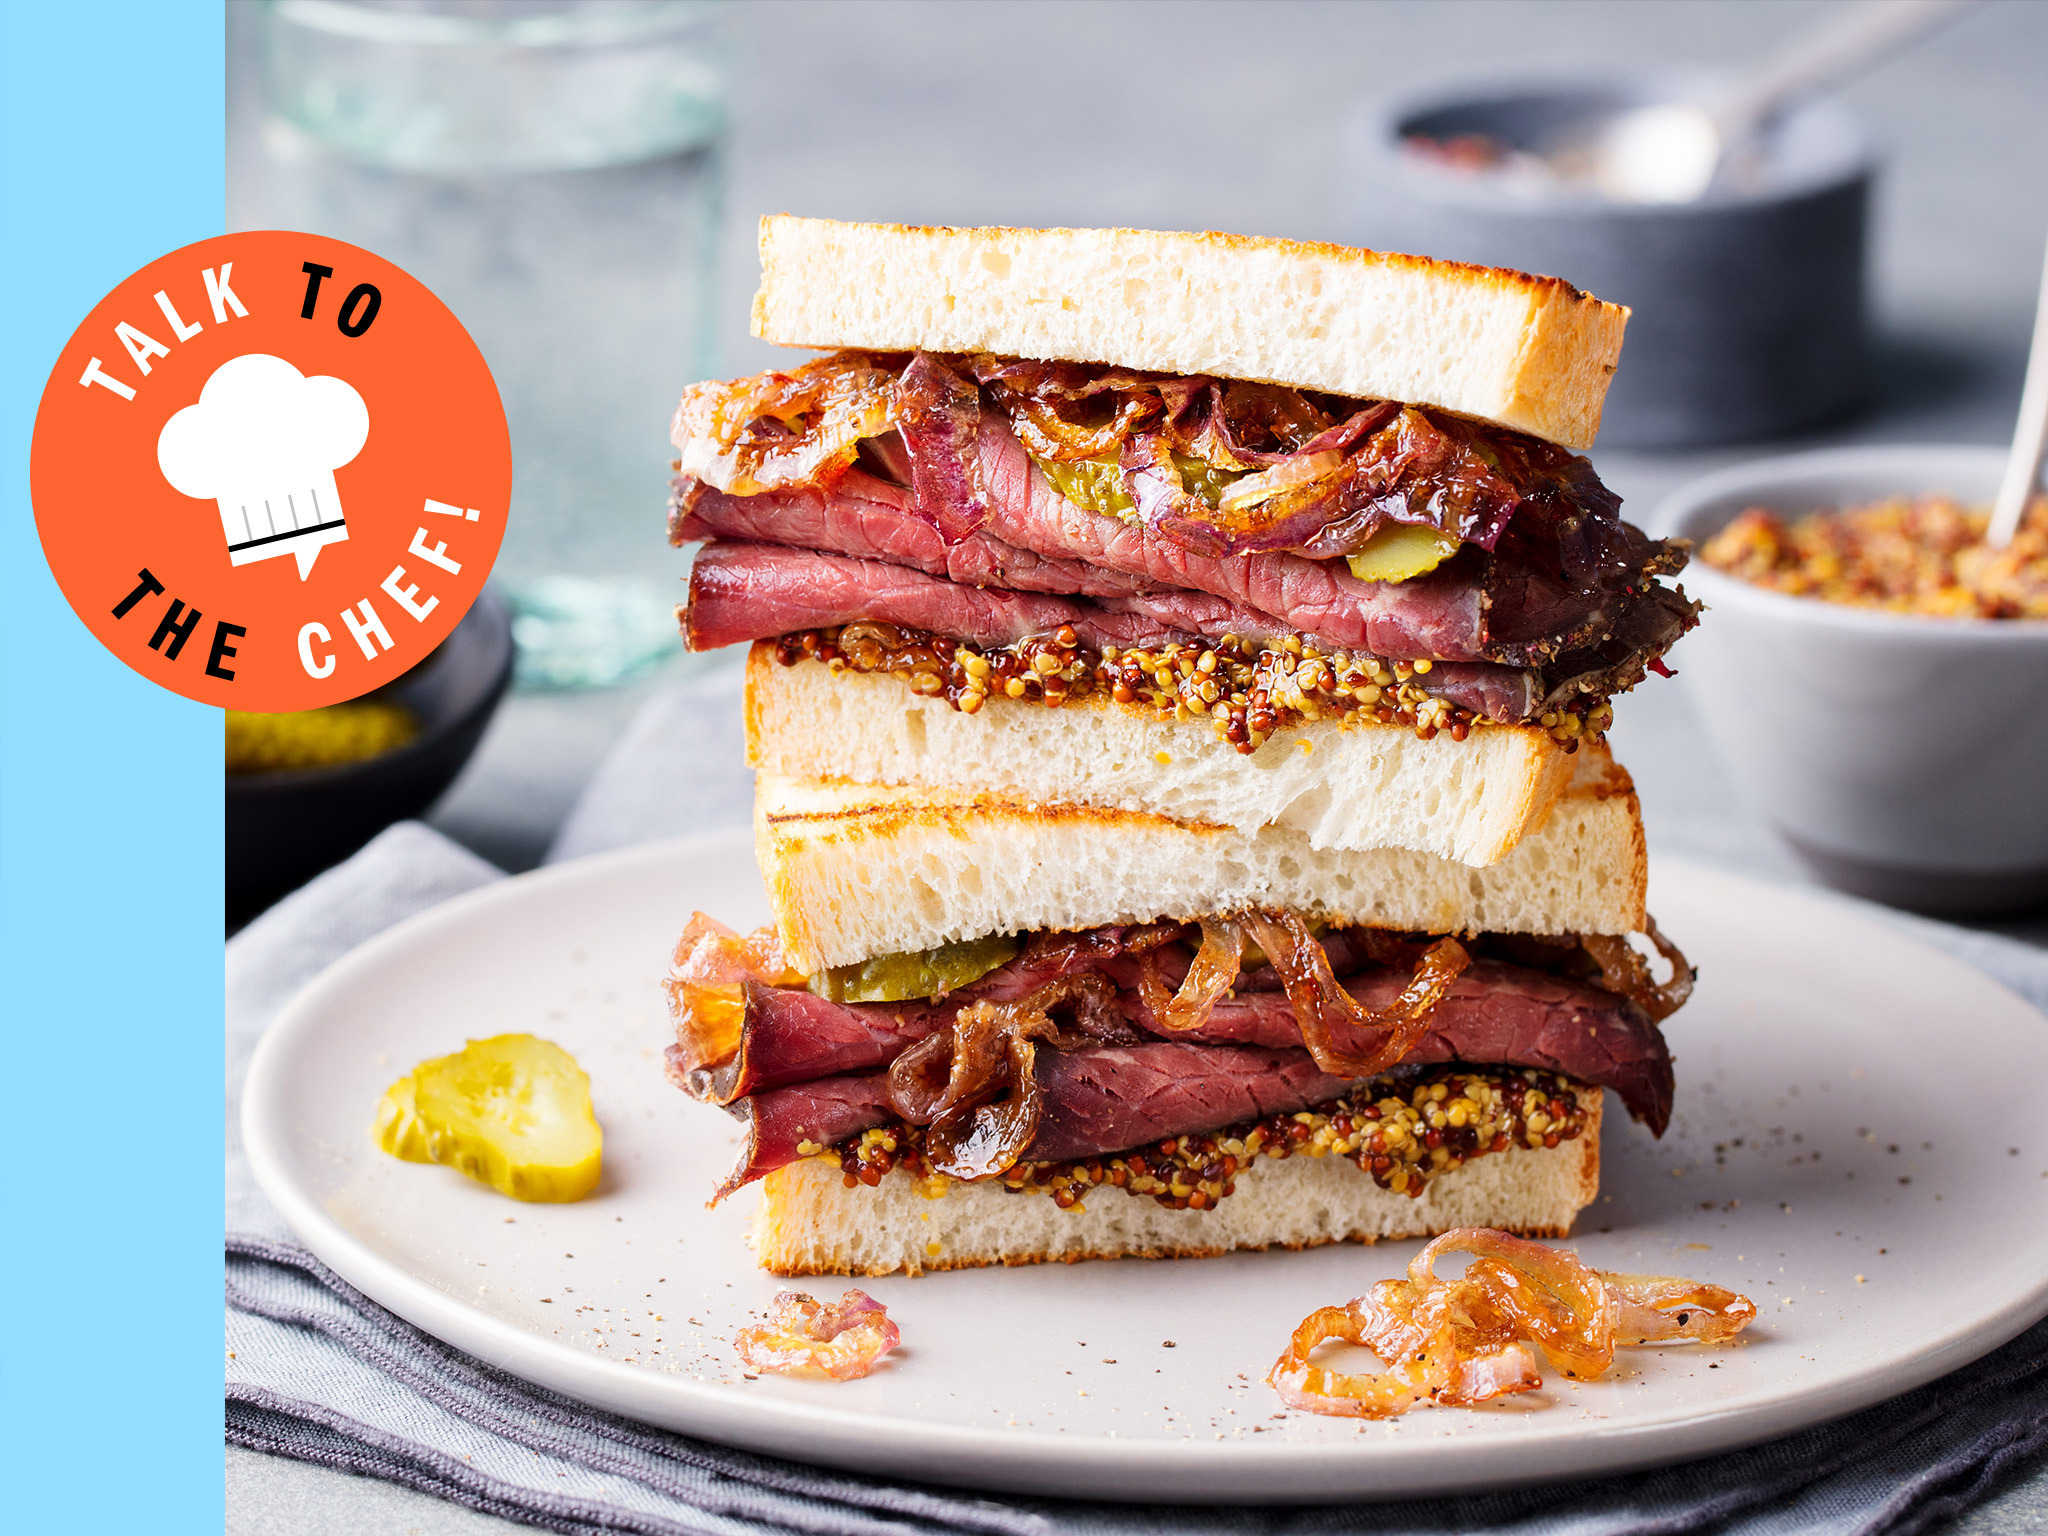 15 genius sandwich hacks, according to the world's best chefs